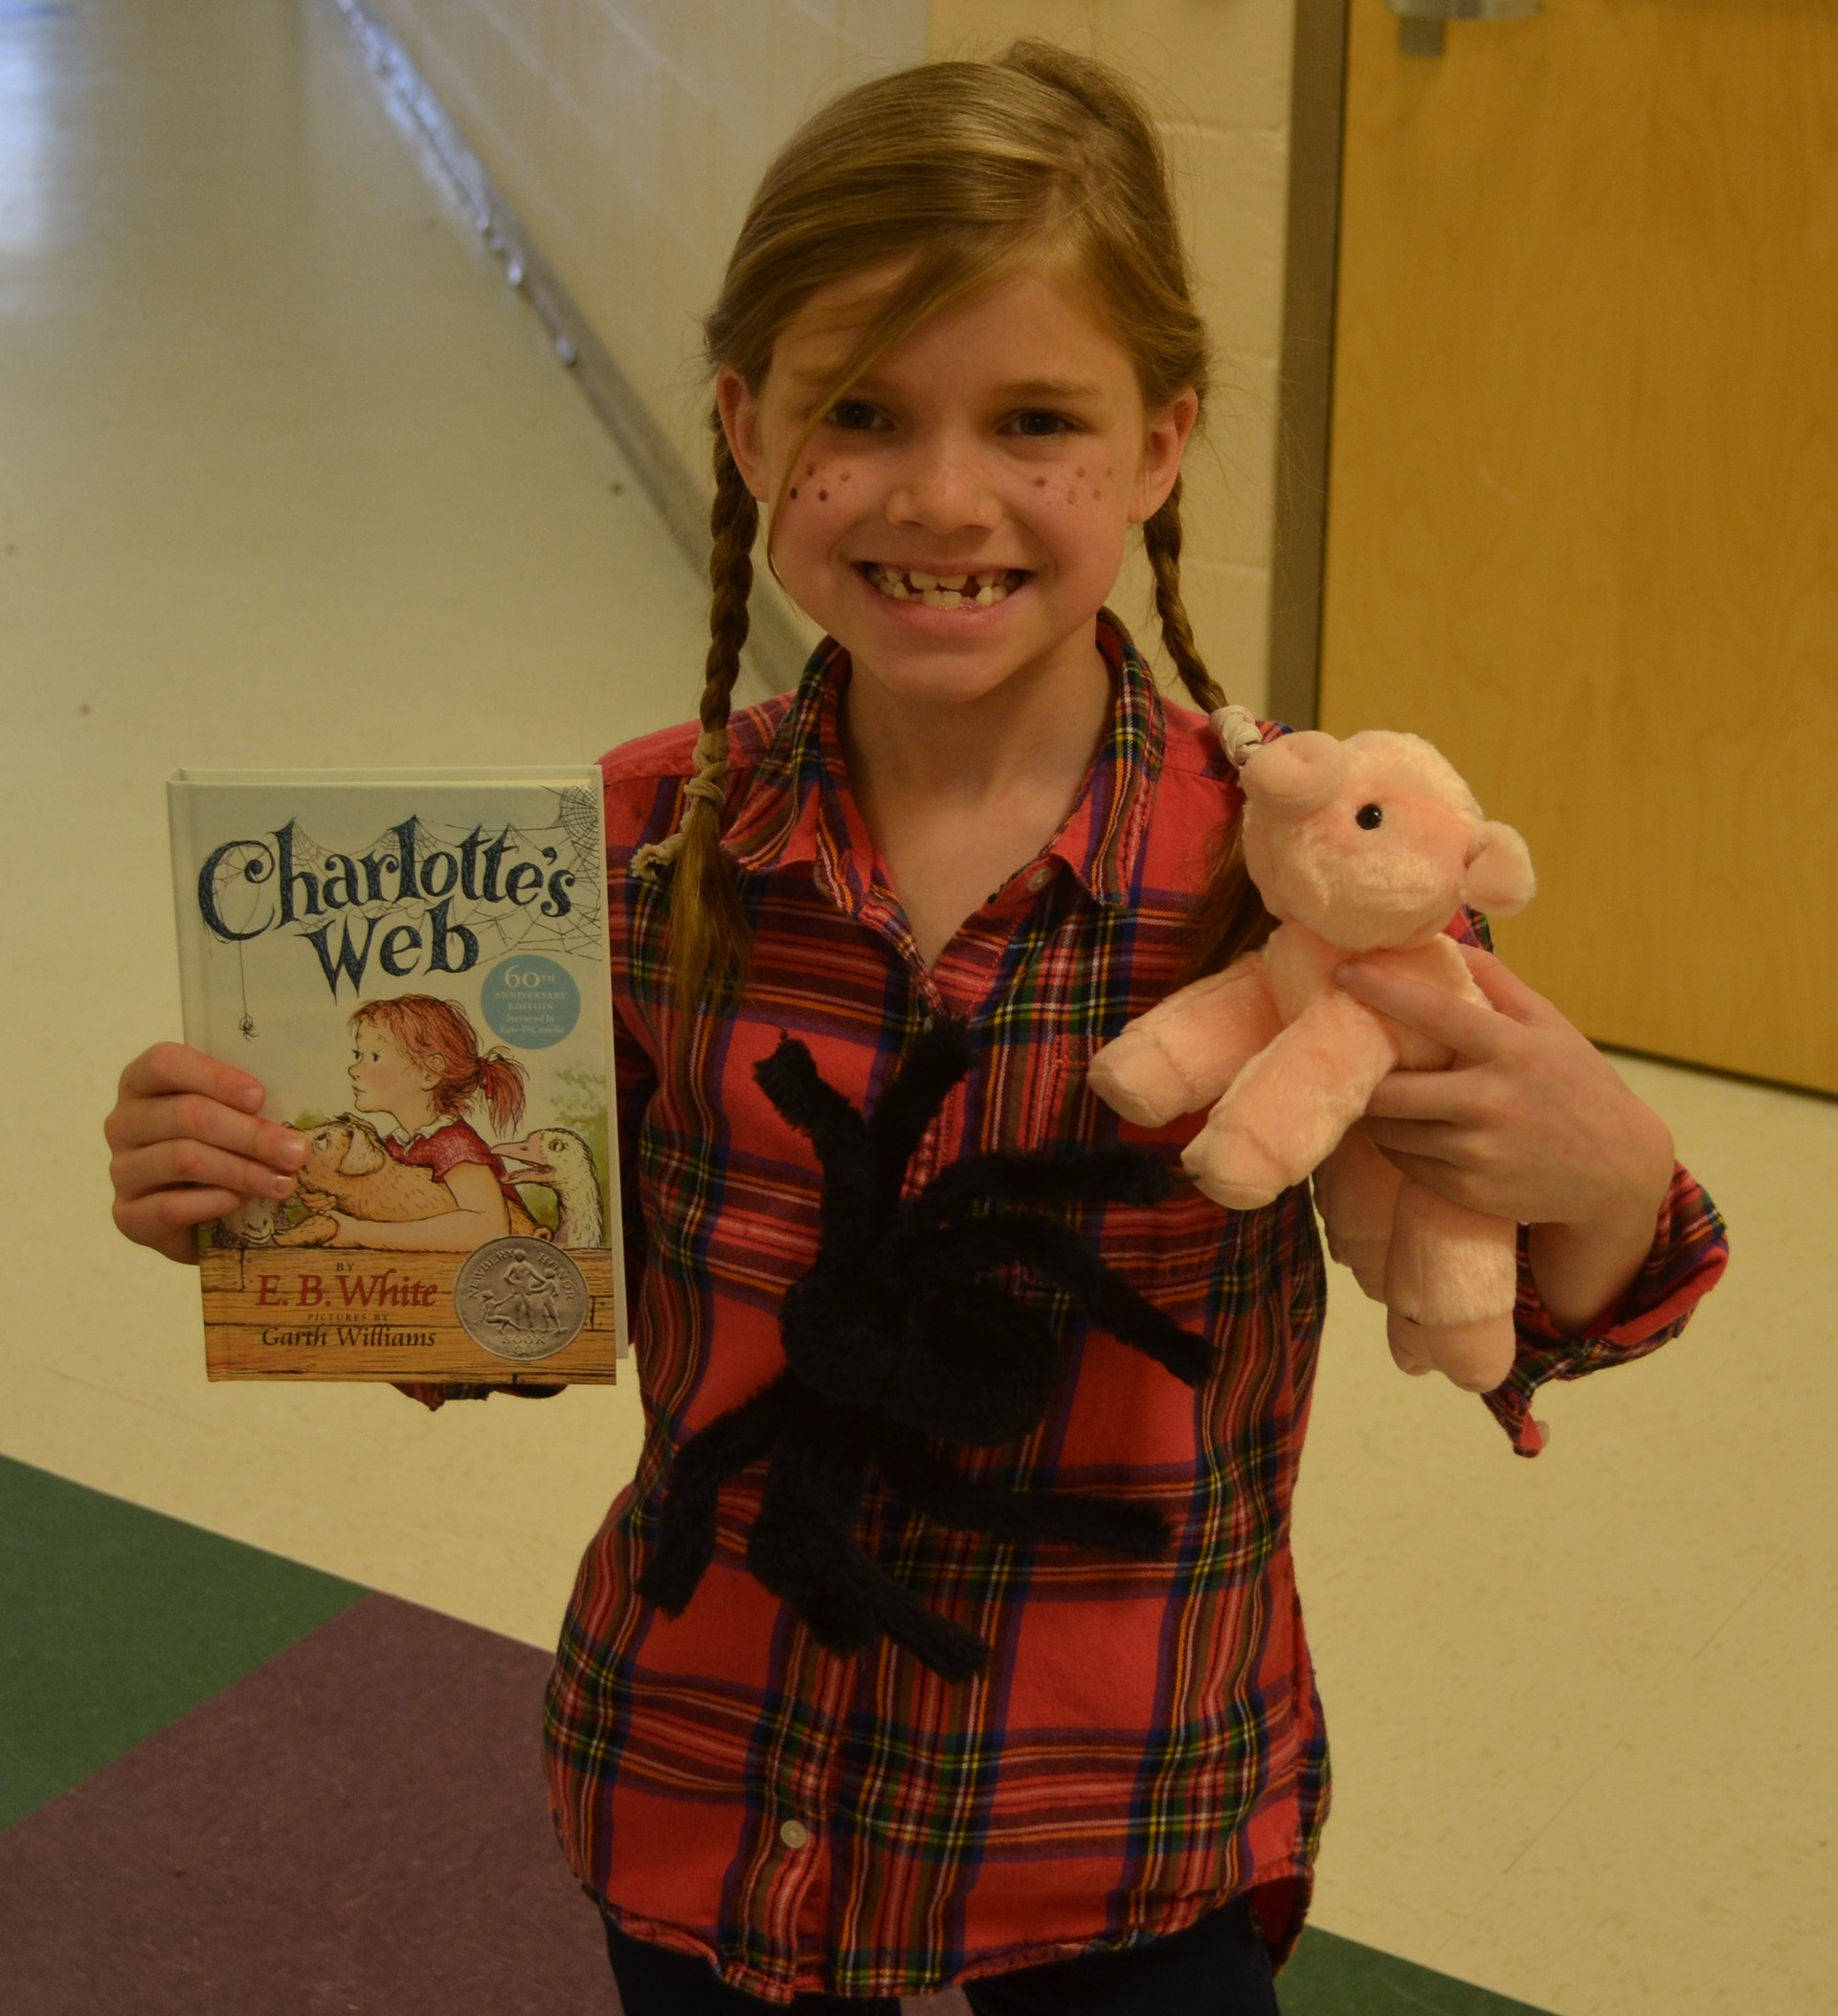 BES students dresses as Fern from Charlotte's Web for Read Across America Day.